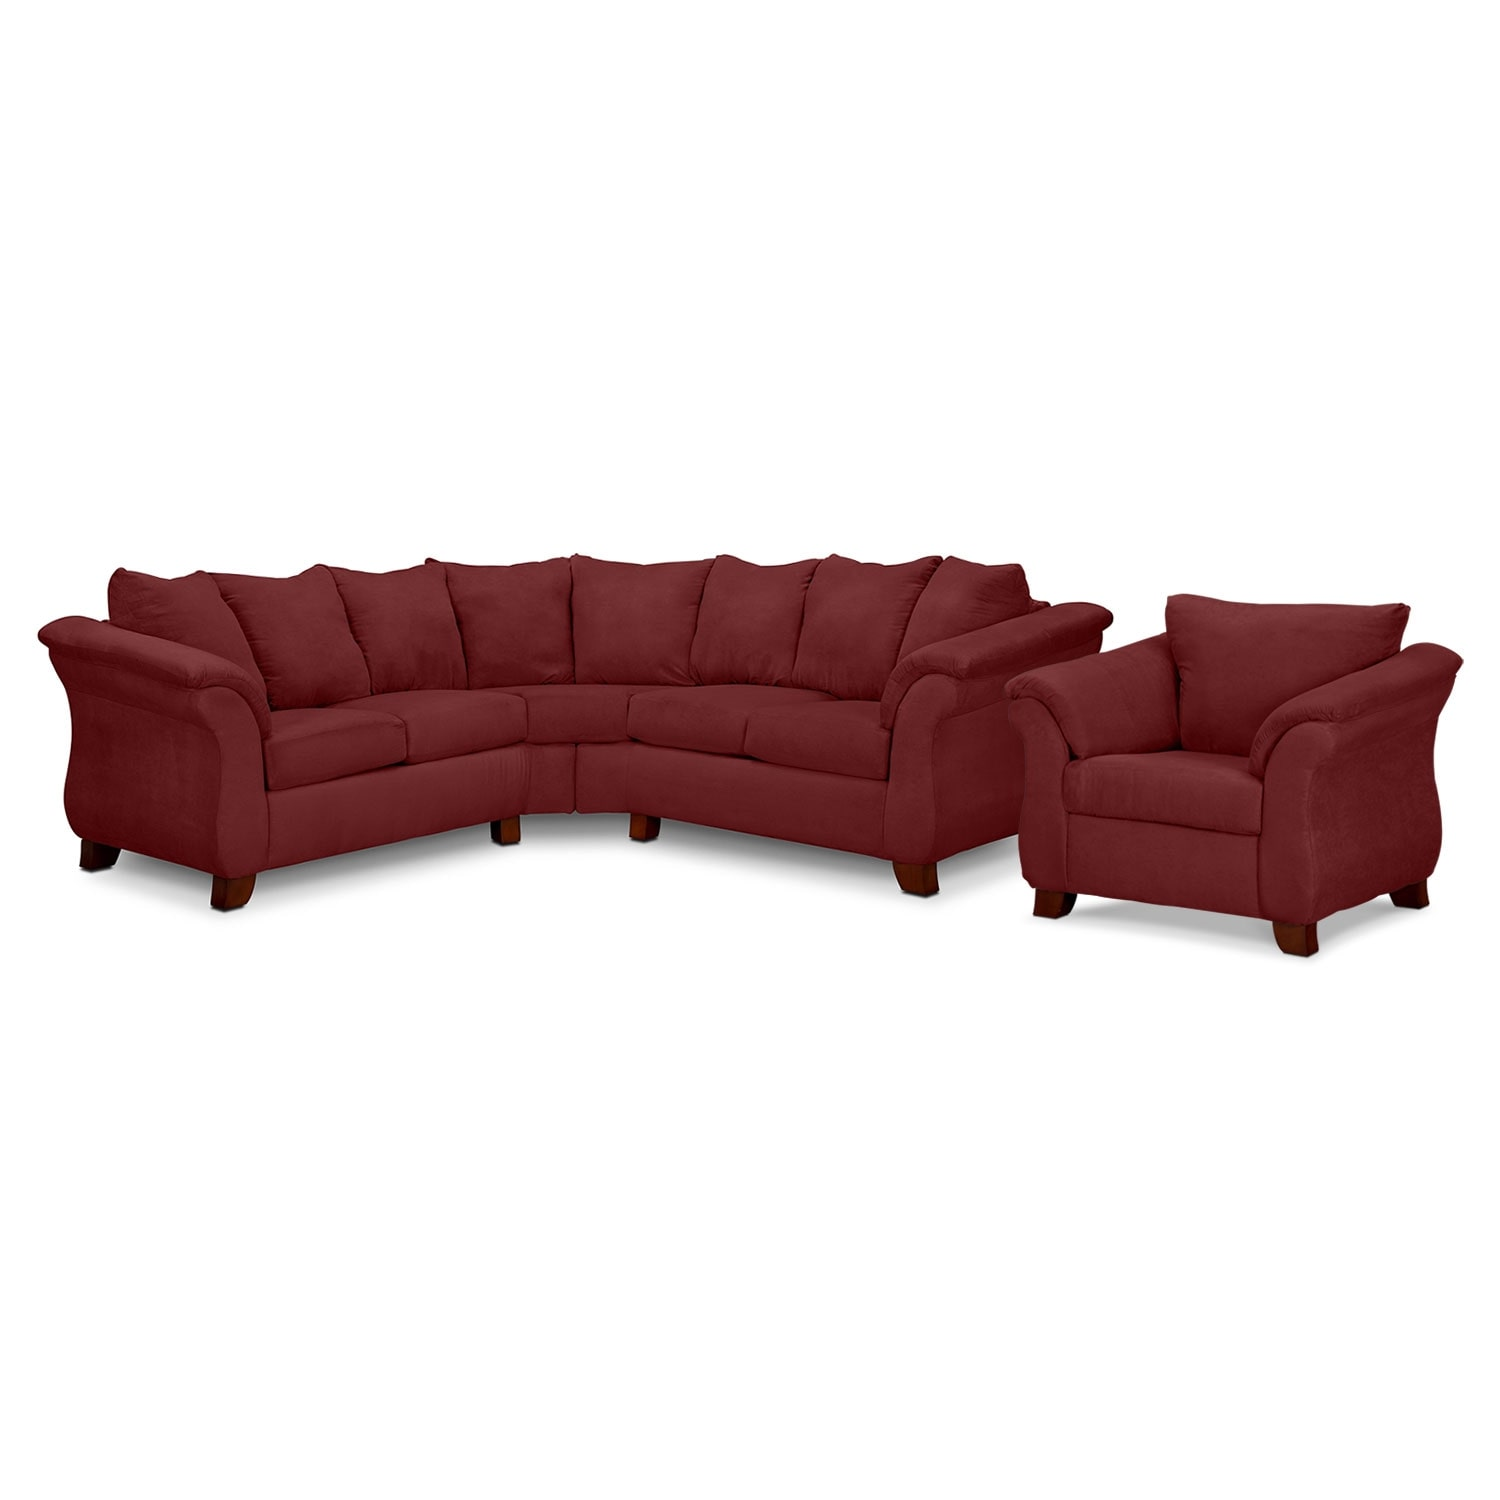 Living Room Furniture - Adrian Red 2-Piece Sectional and Chair Set - Red